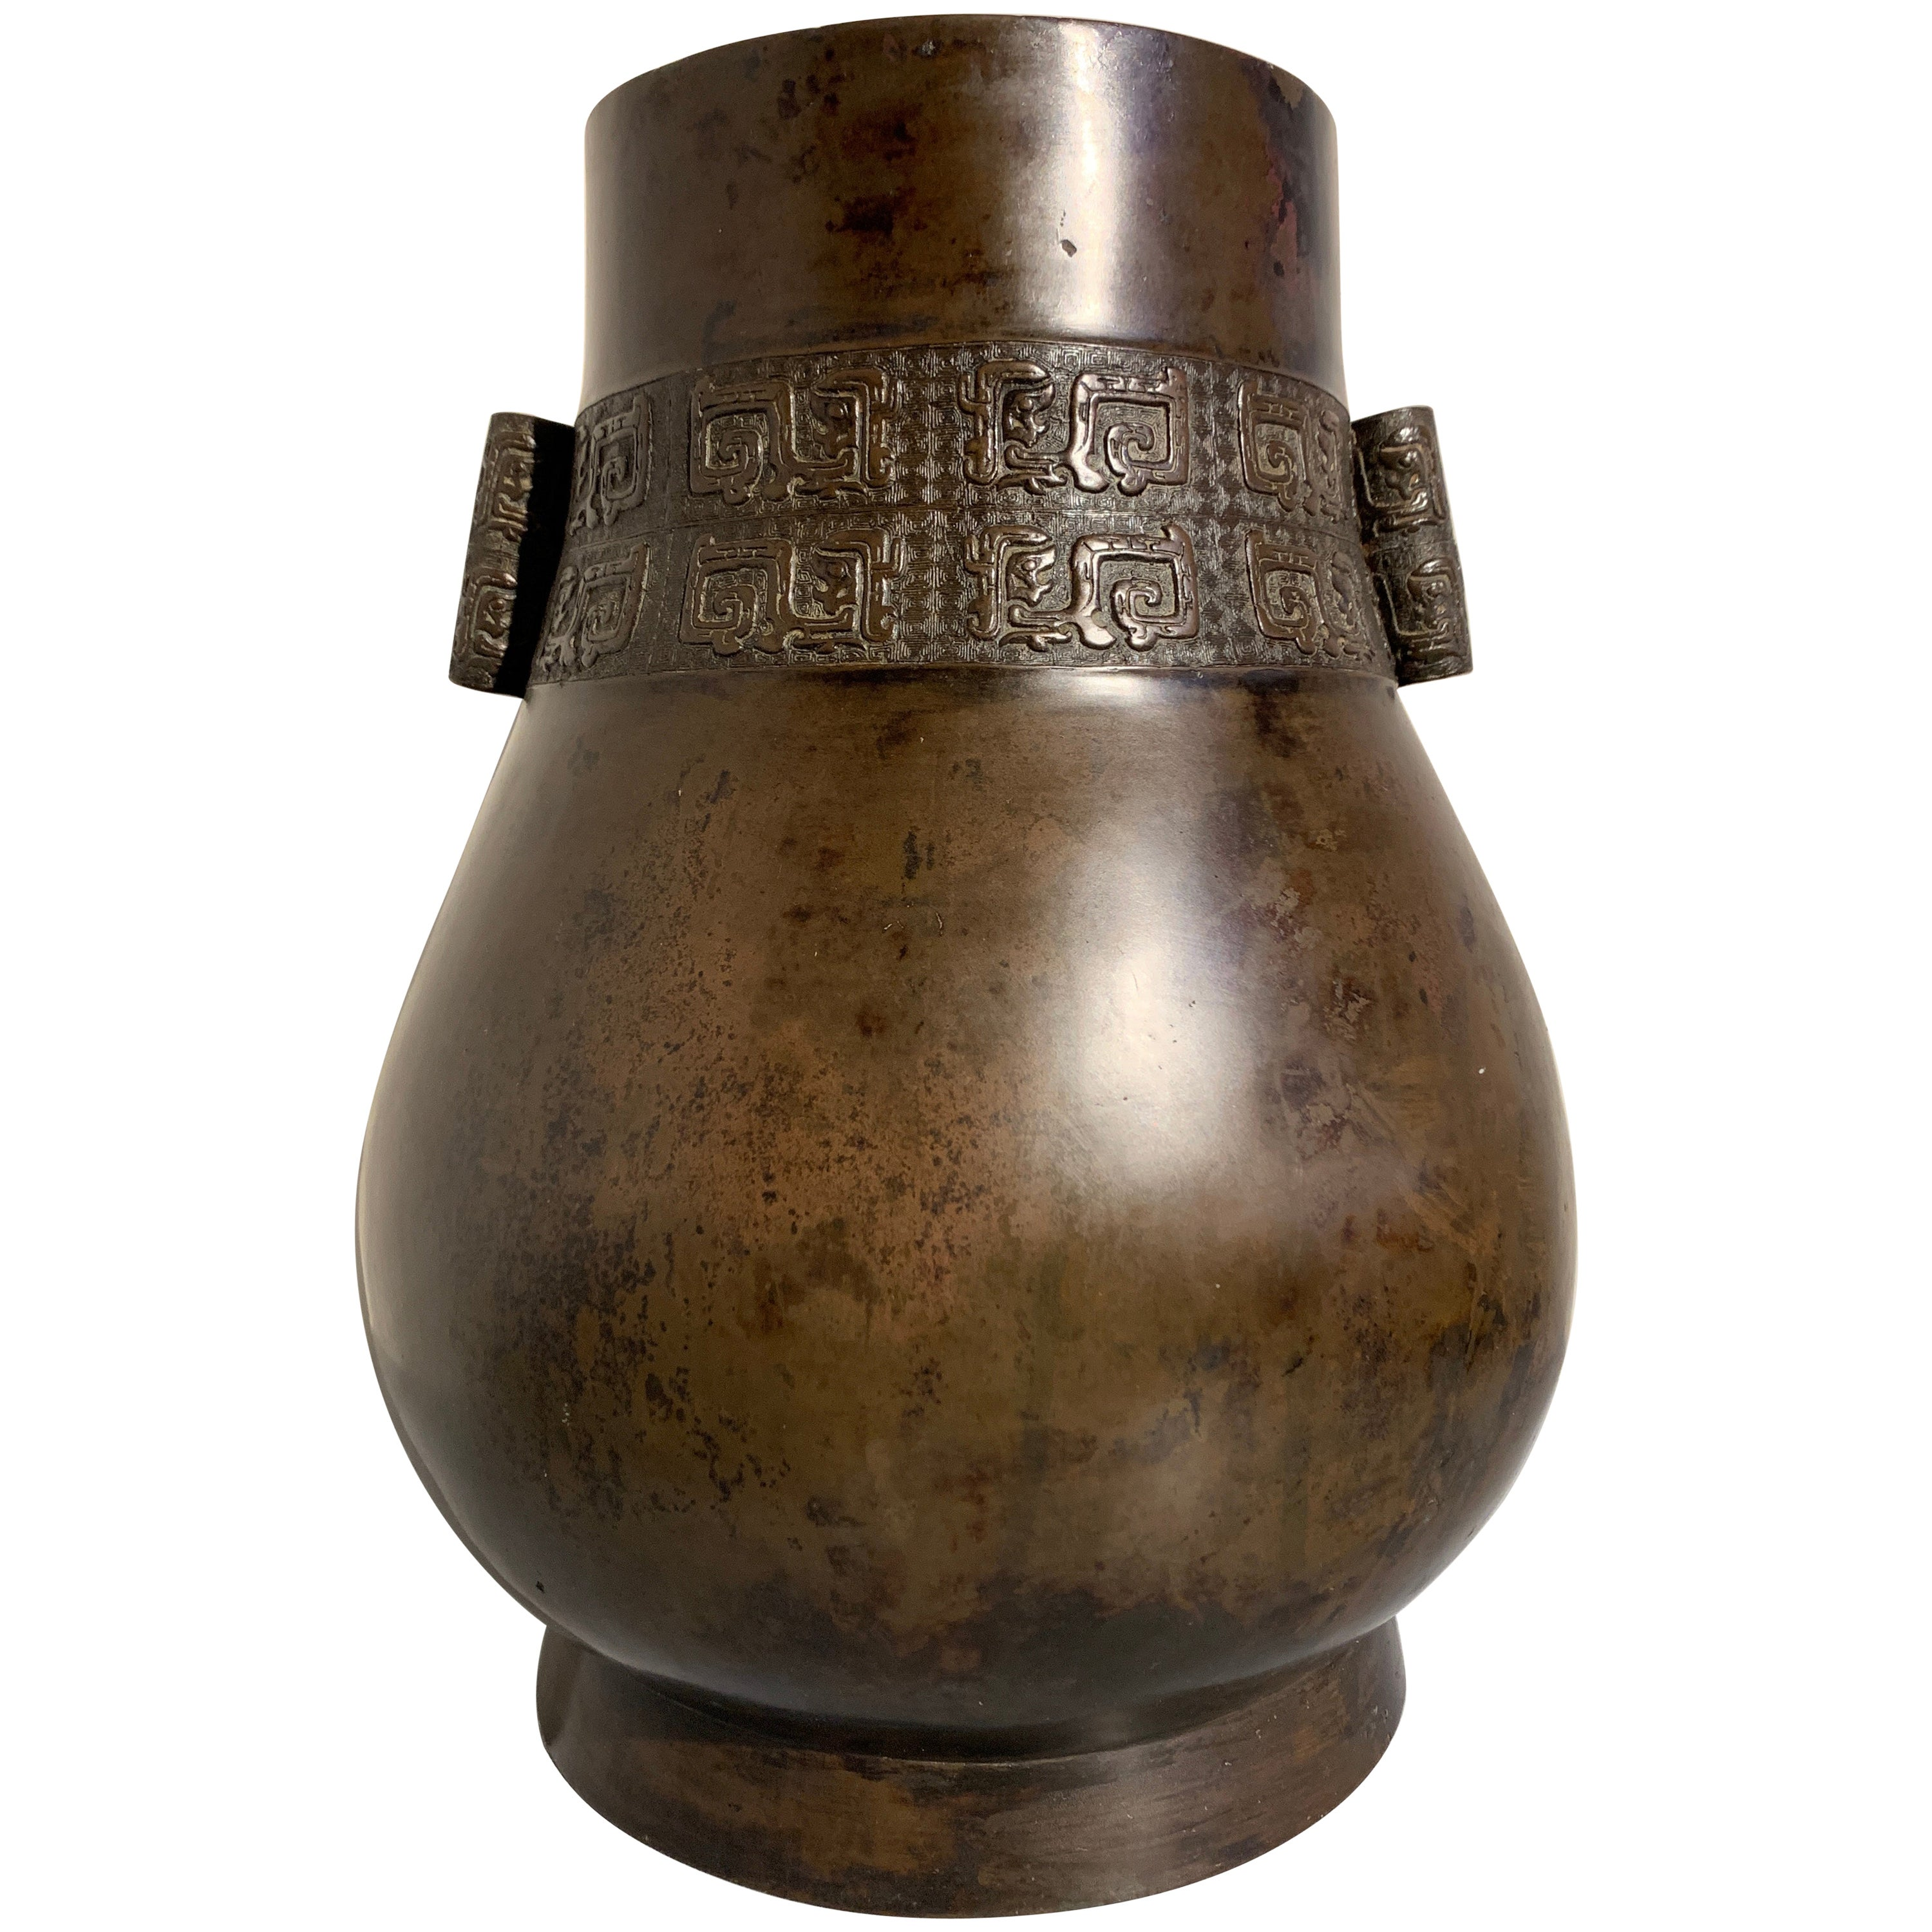 Large Chinese Archaistic Bronze Hu Arrow Vase, Ming/Qing Dynasty, 17th Century